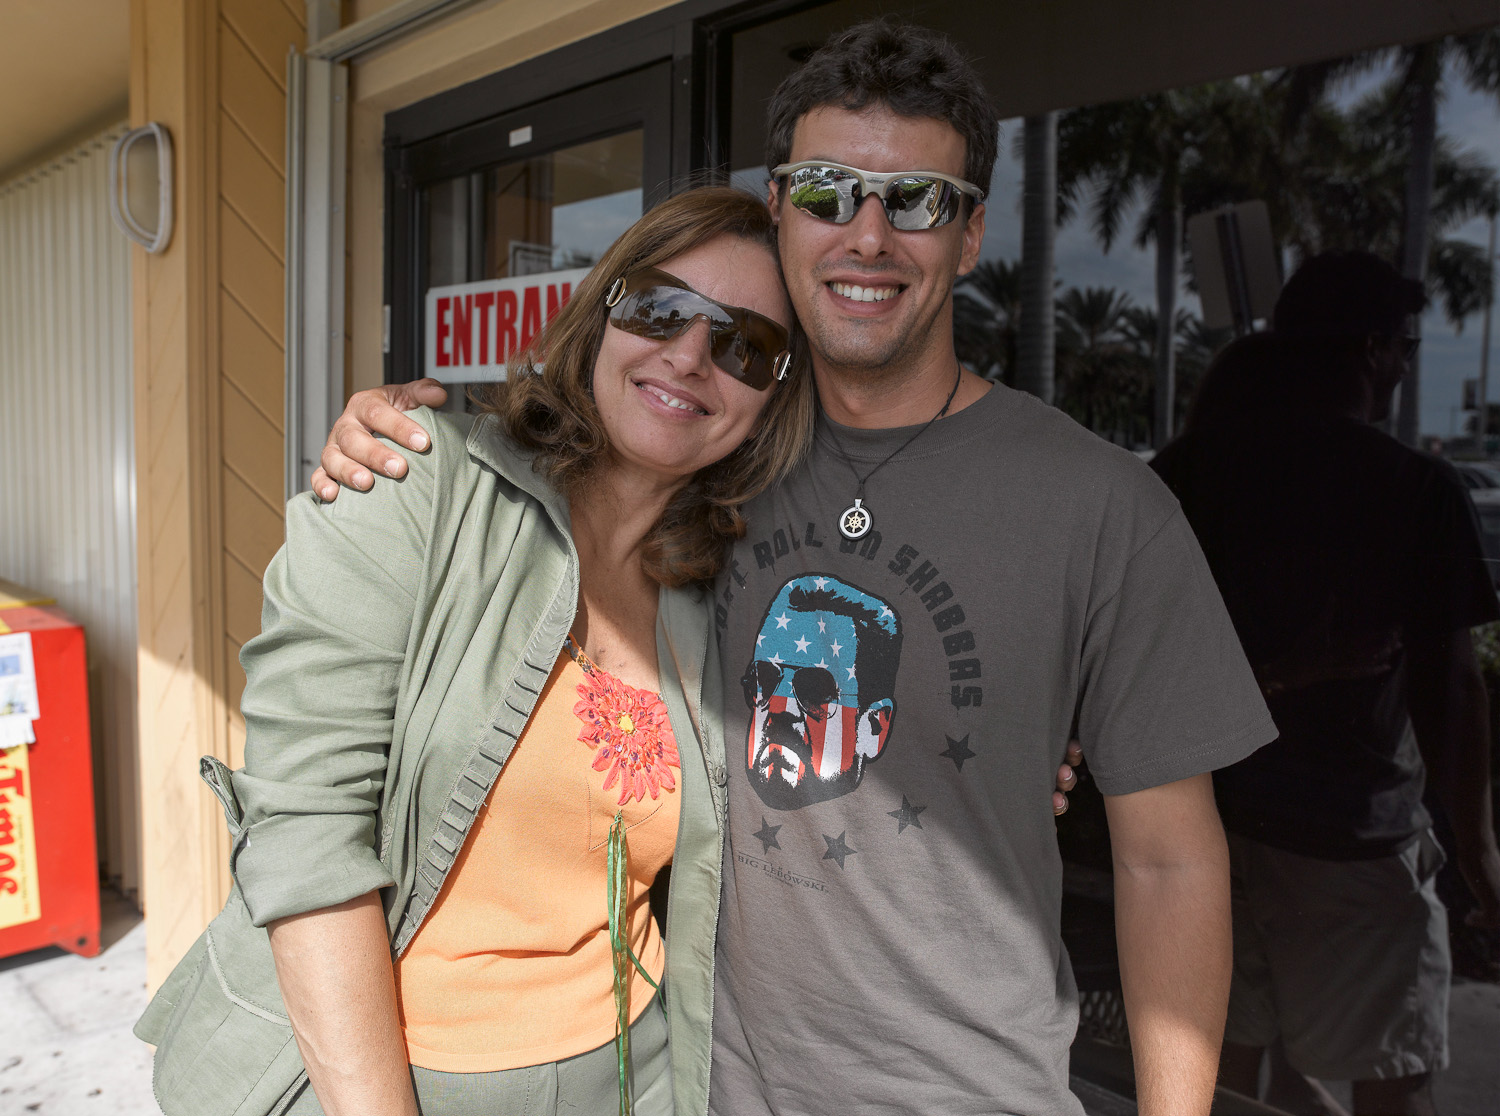 Yaniv and Sara - Aventura, Florida, 2007